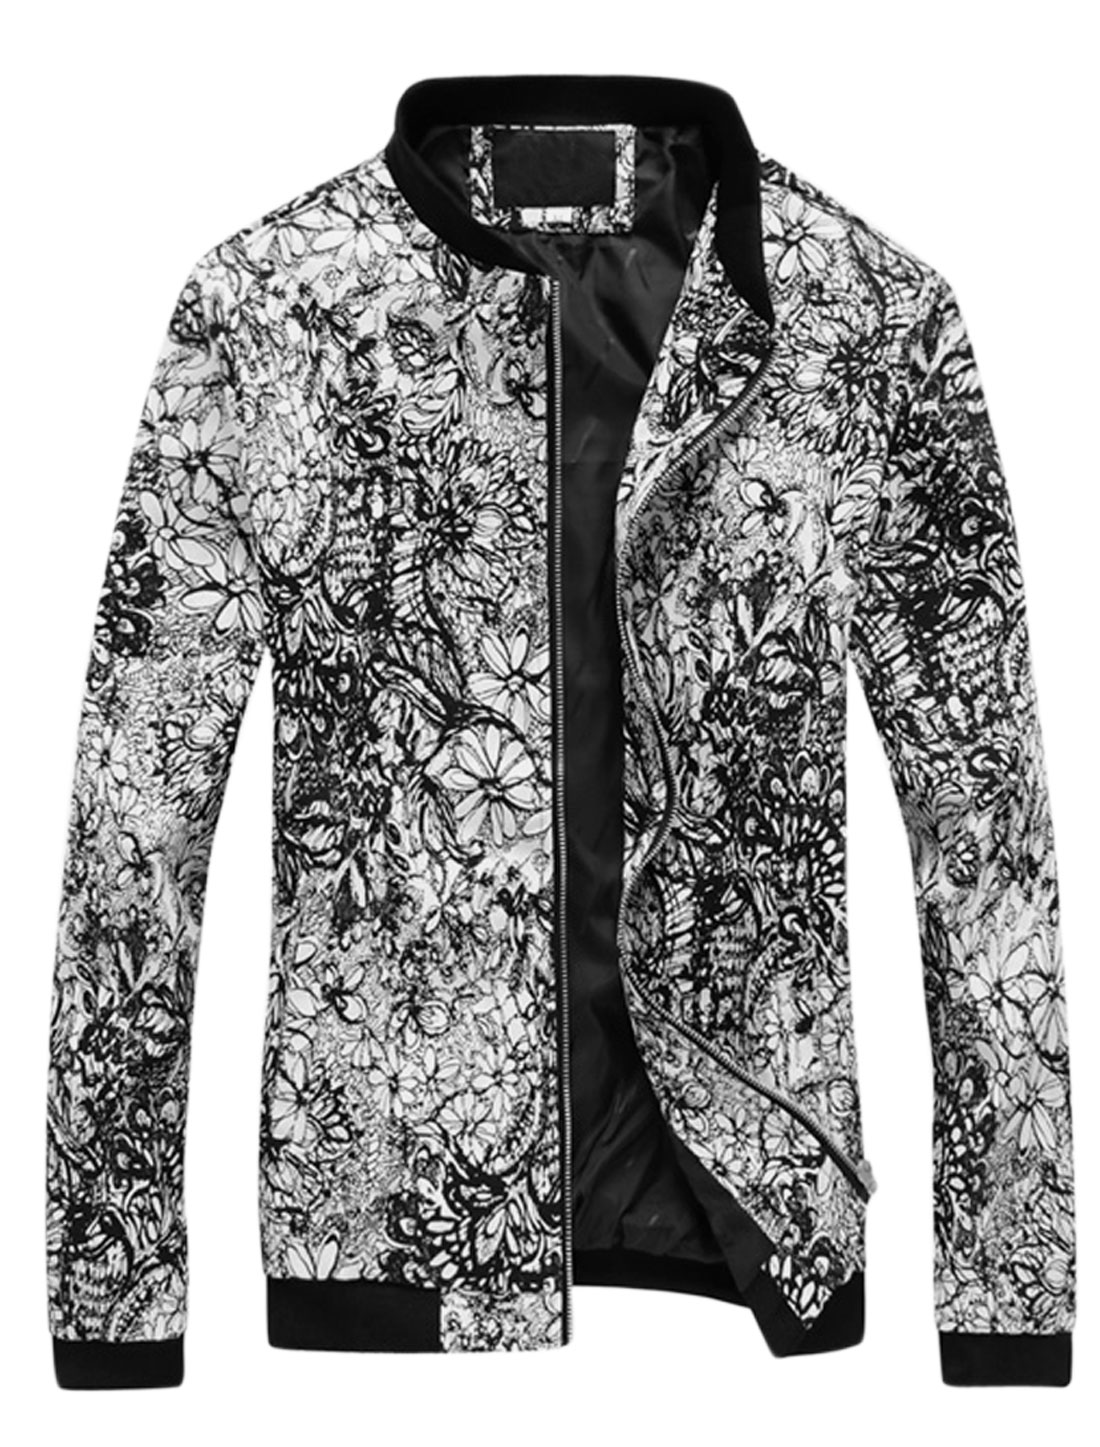 Men Floral Prints Zip Up Stand Collar Casual Jacket Black S